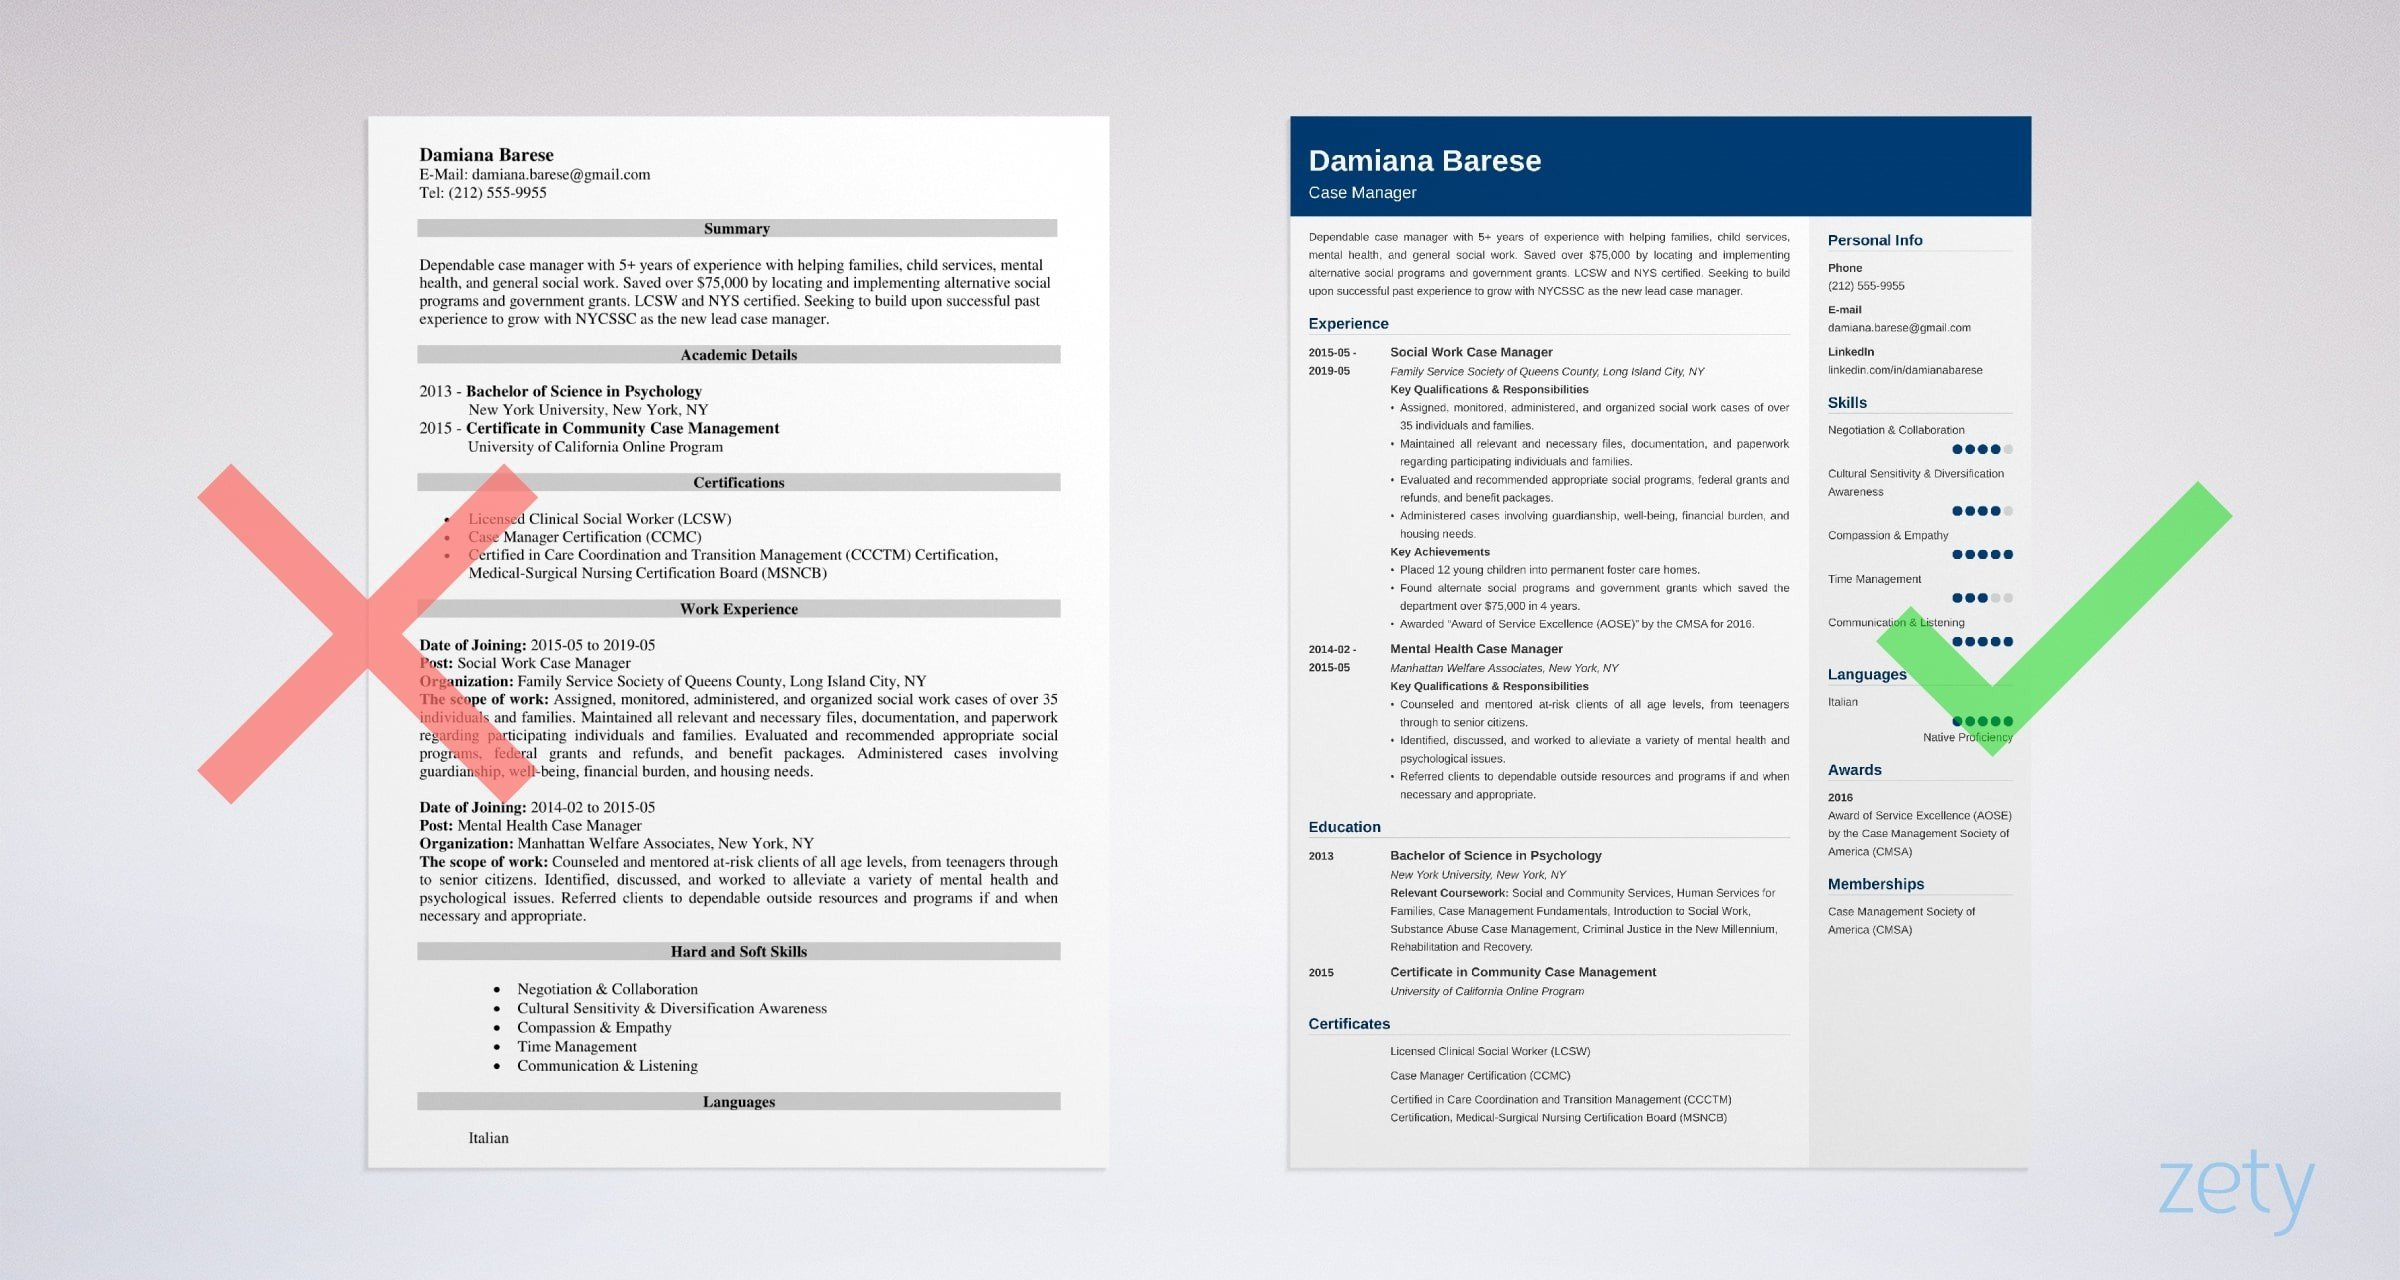 Case Manager Resume | Case Manager Resume Sample Complete Writing Guide 20 Tips